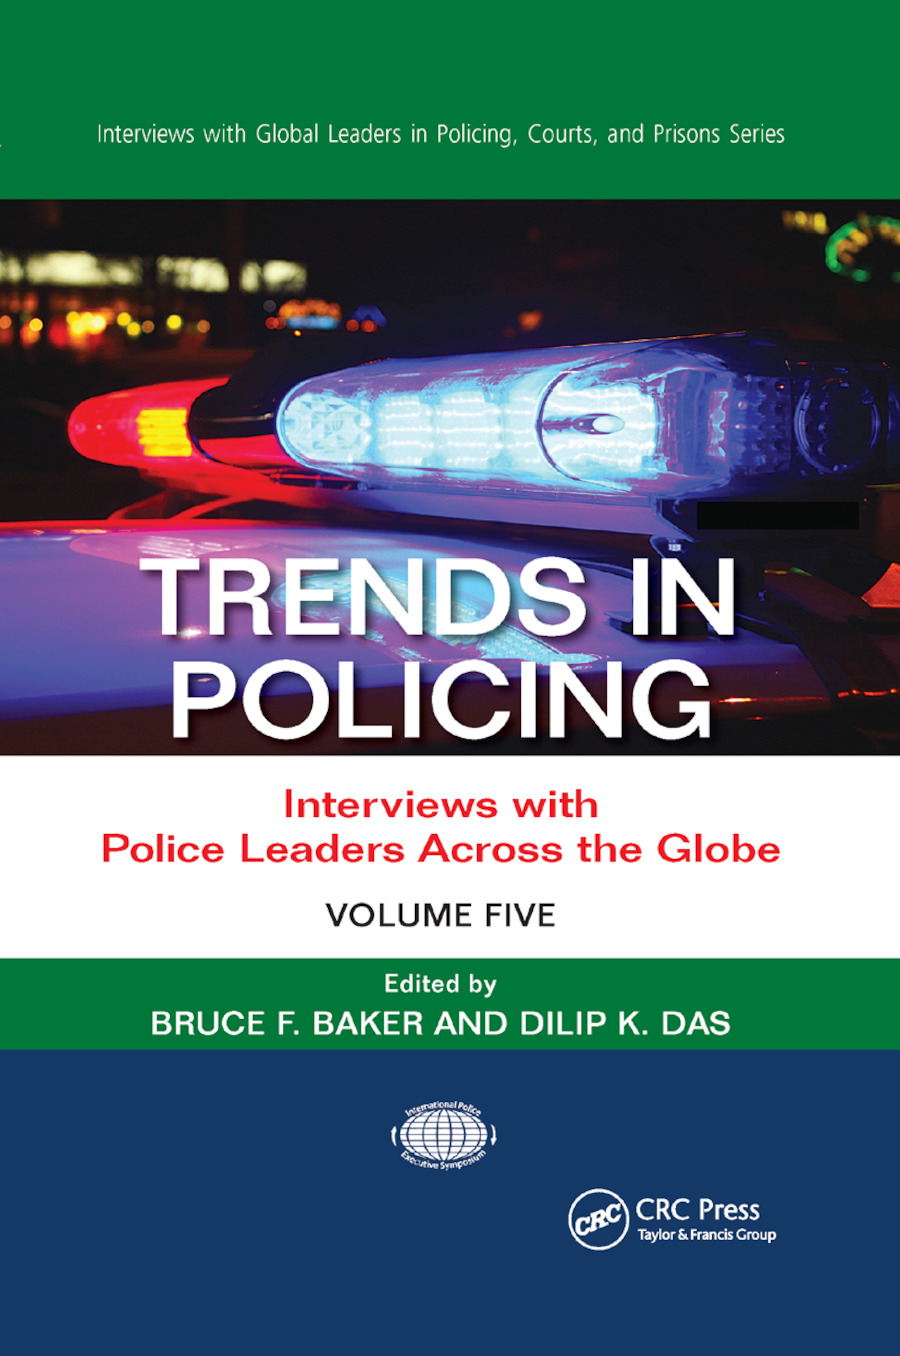 Trends in Policing: Interviews with Police Leaders Across the Globe, Volume Five book cover